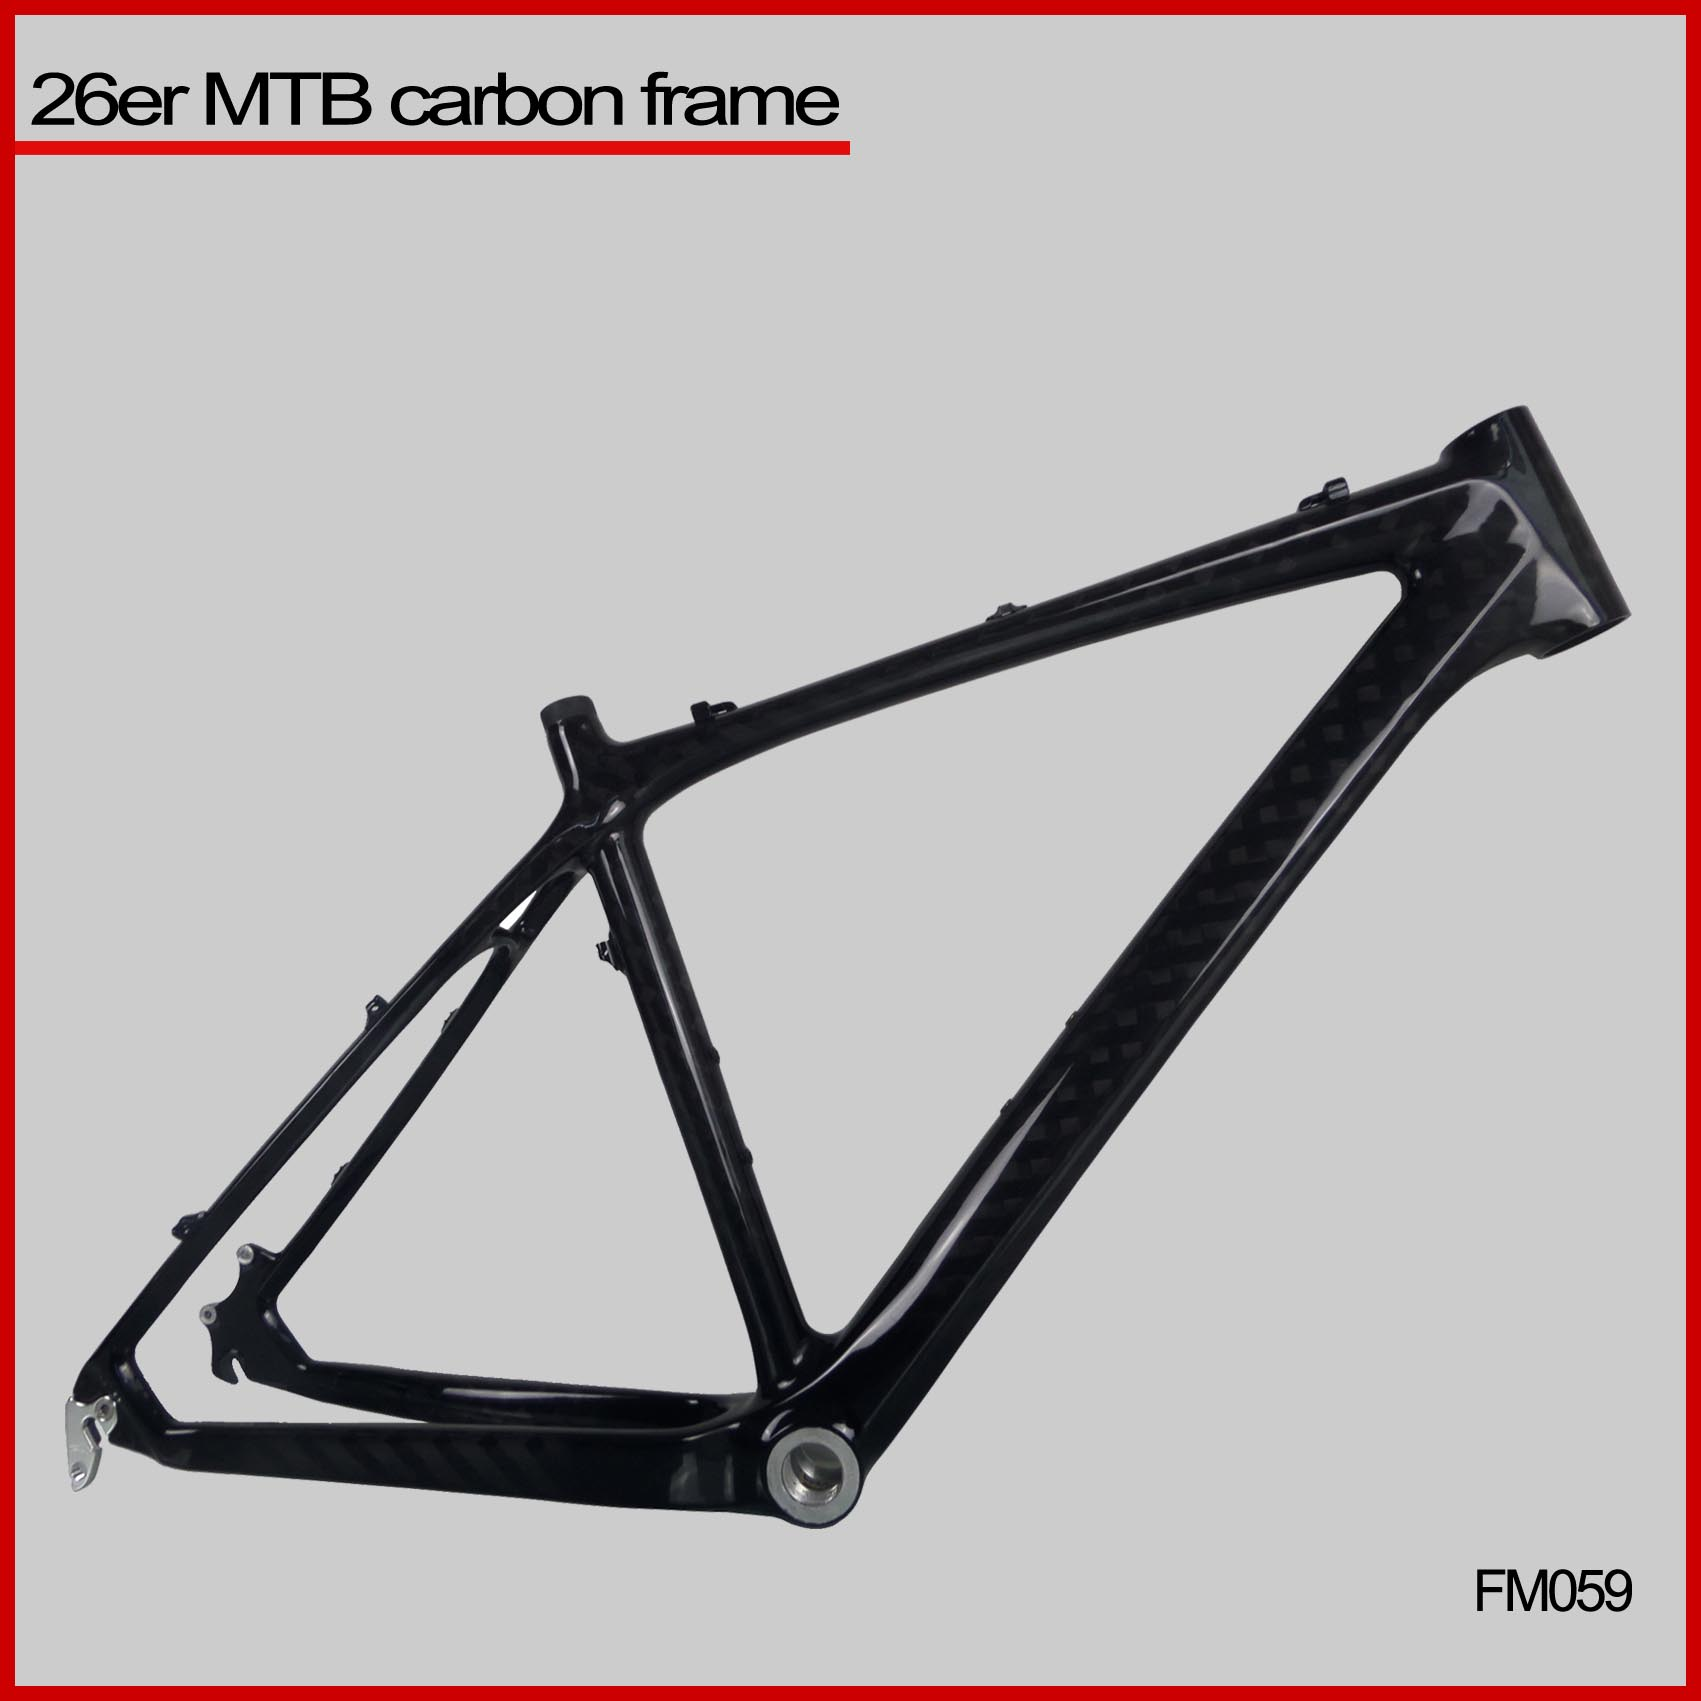 china mountain bike carbon frame carbon mtb bike frame 26er mtb frame FM059